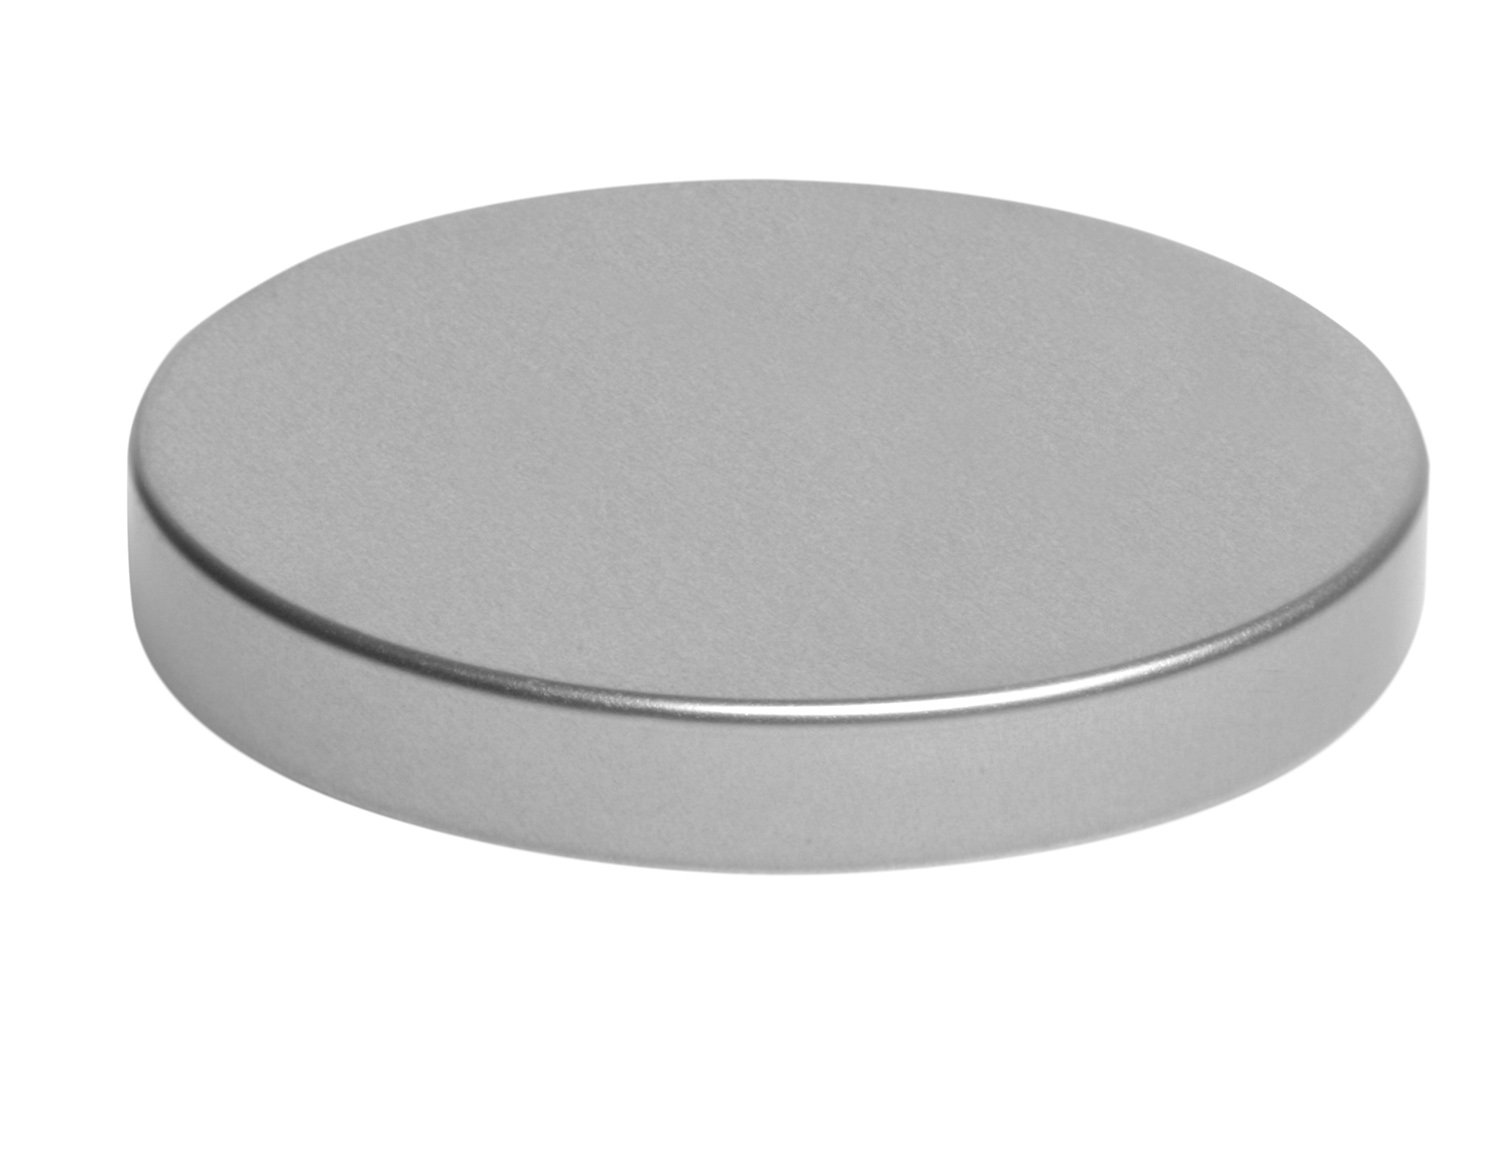 EAP Innovations Z7845 - Silver Cover, Pack of 12